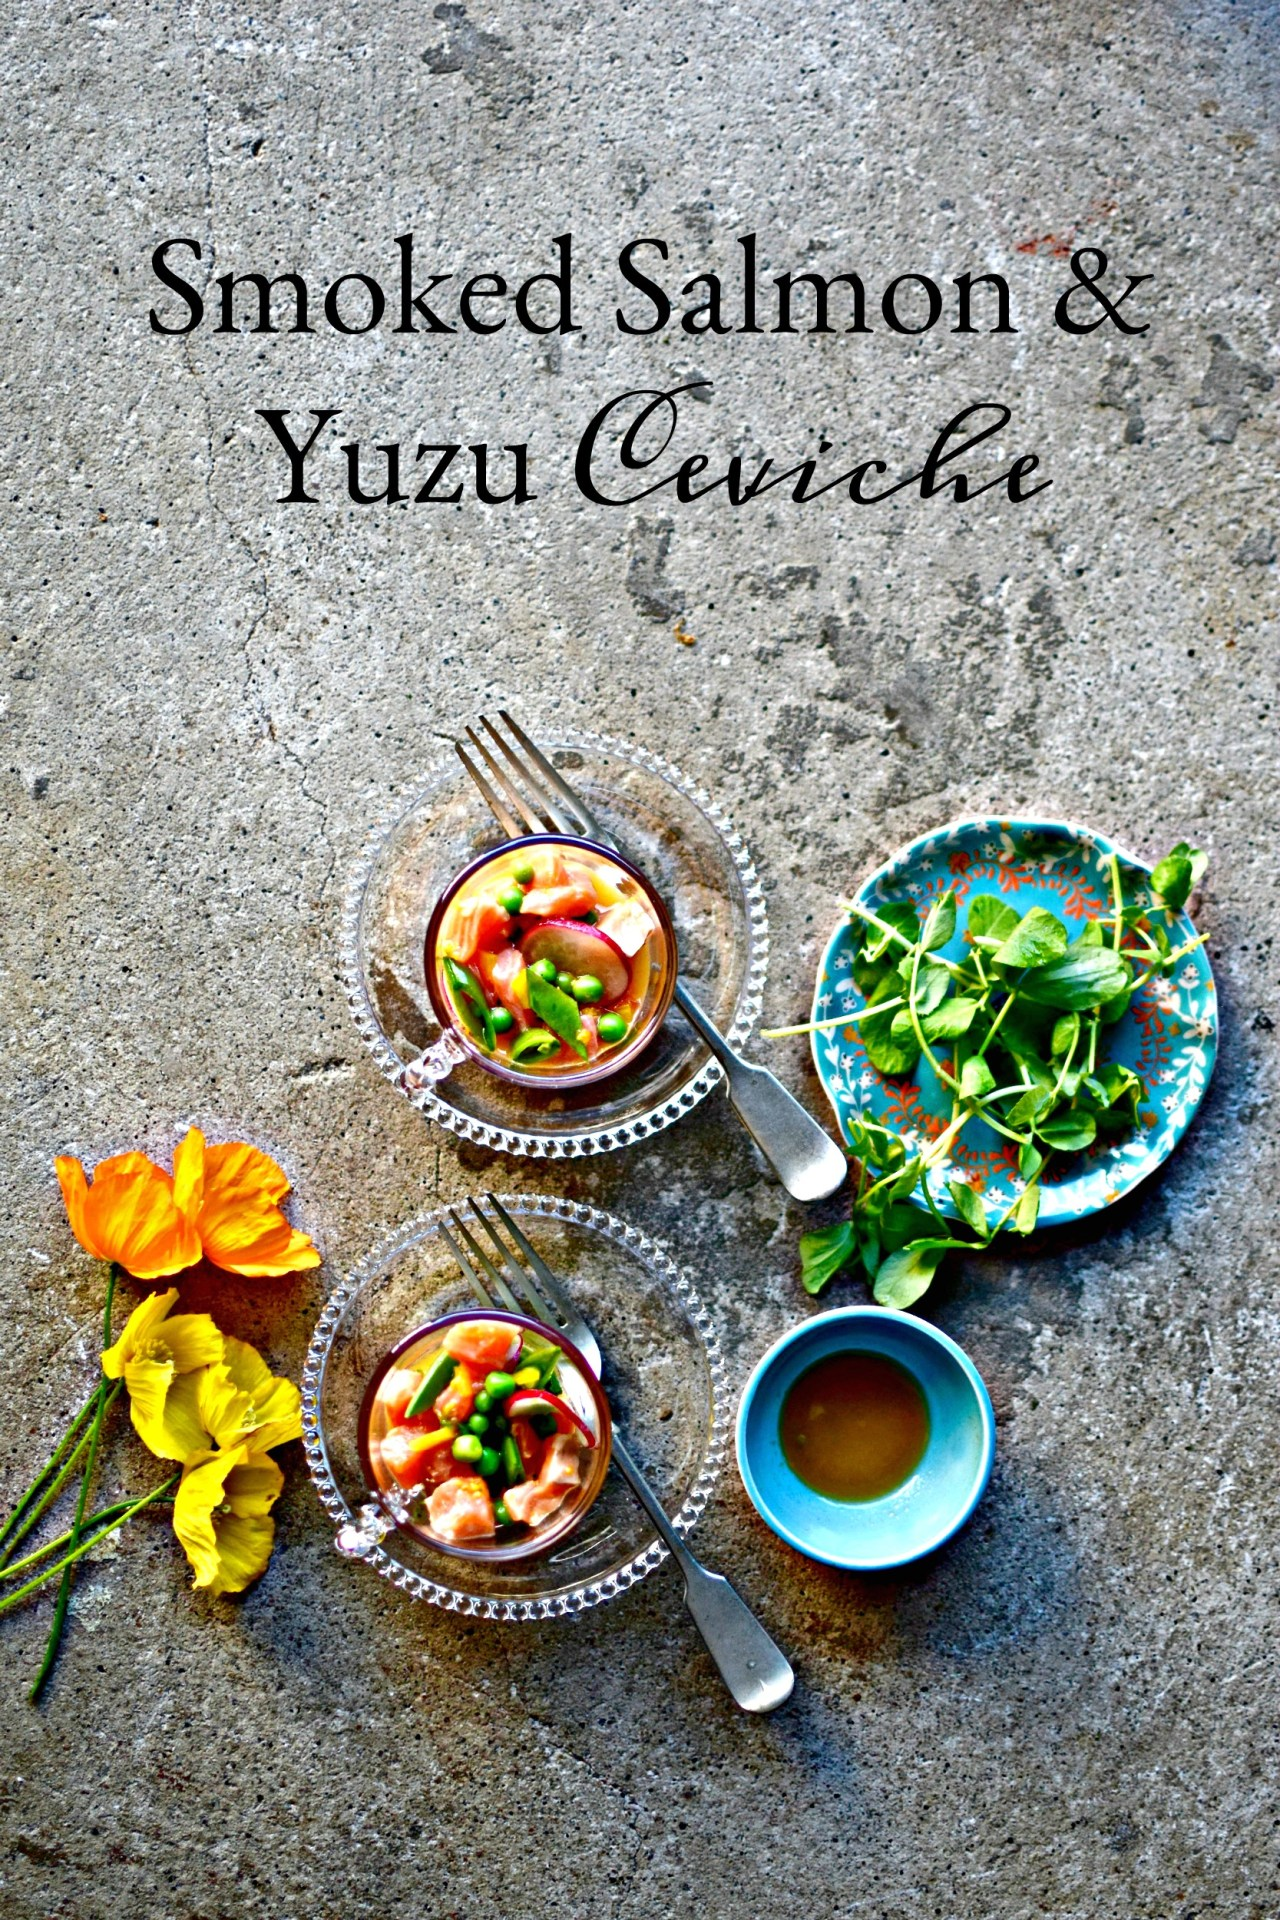 Light, bright, healthy and easy, ceviche is summer's quickest fancy food option. Cooked, yet not heated, ceviche saves you toiling away in a hot kitchen yet gives you the most glorious appetizer or lunch. And it's one of the easiest and prettiest dishes in the world to prepare. The yuzu tips it into must-make territory.